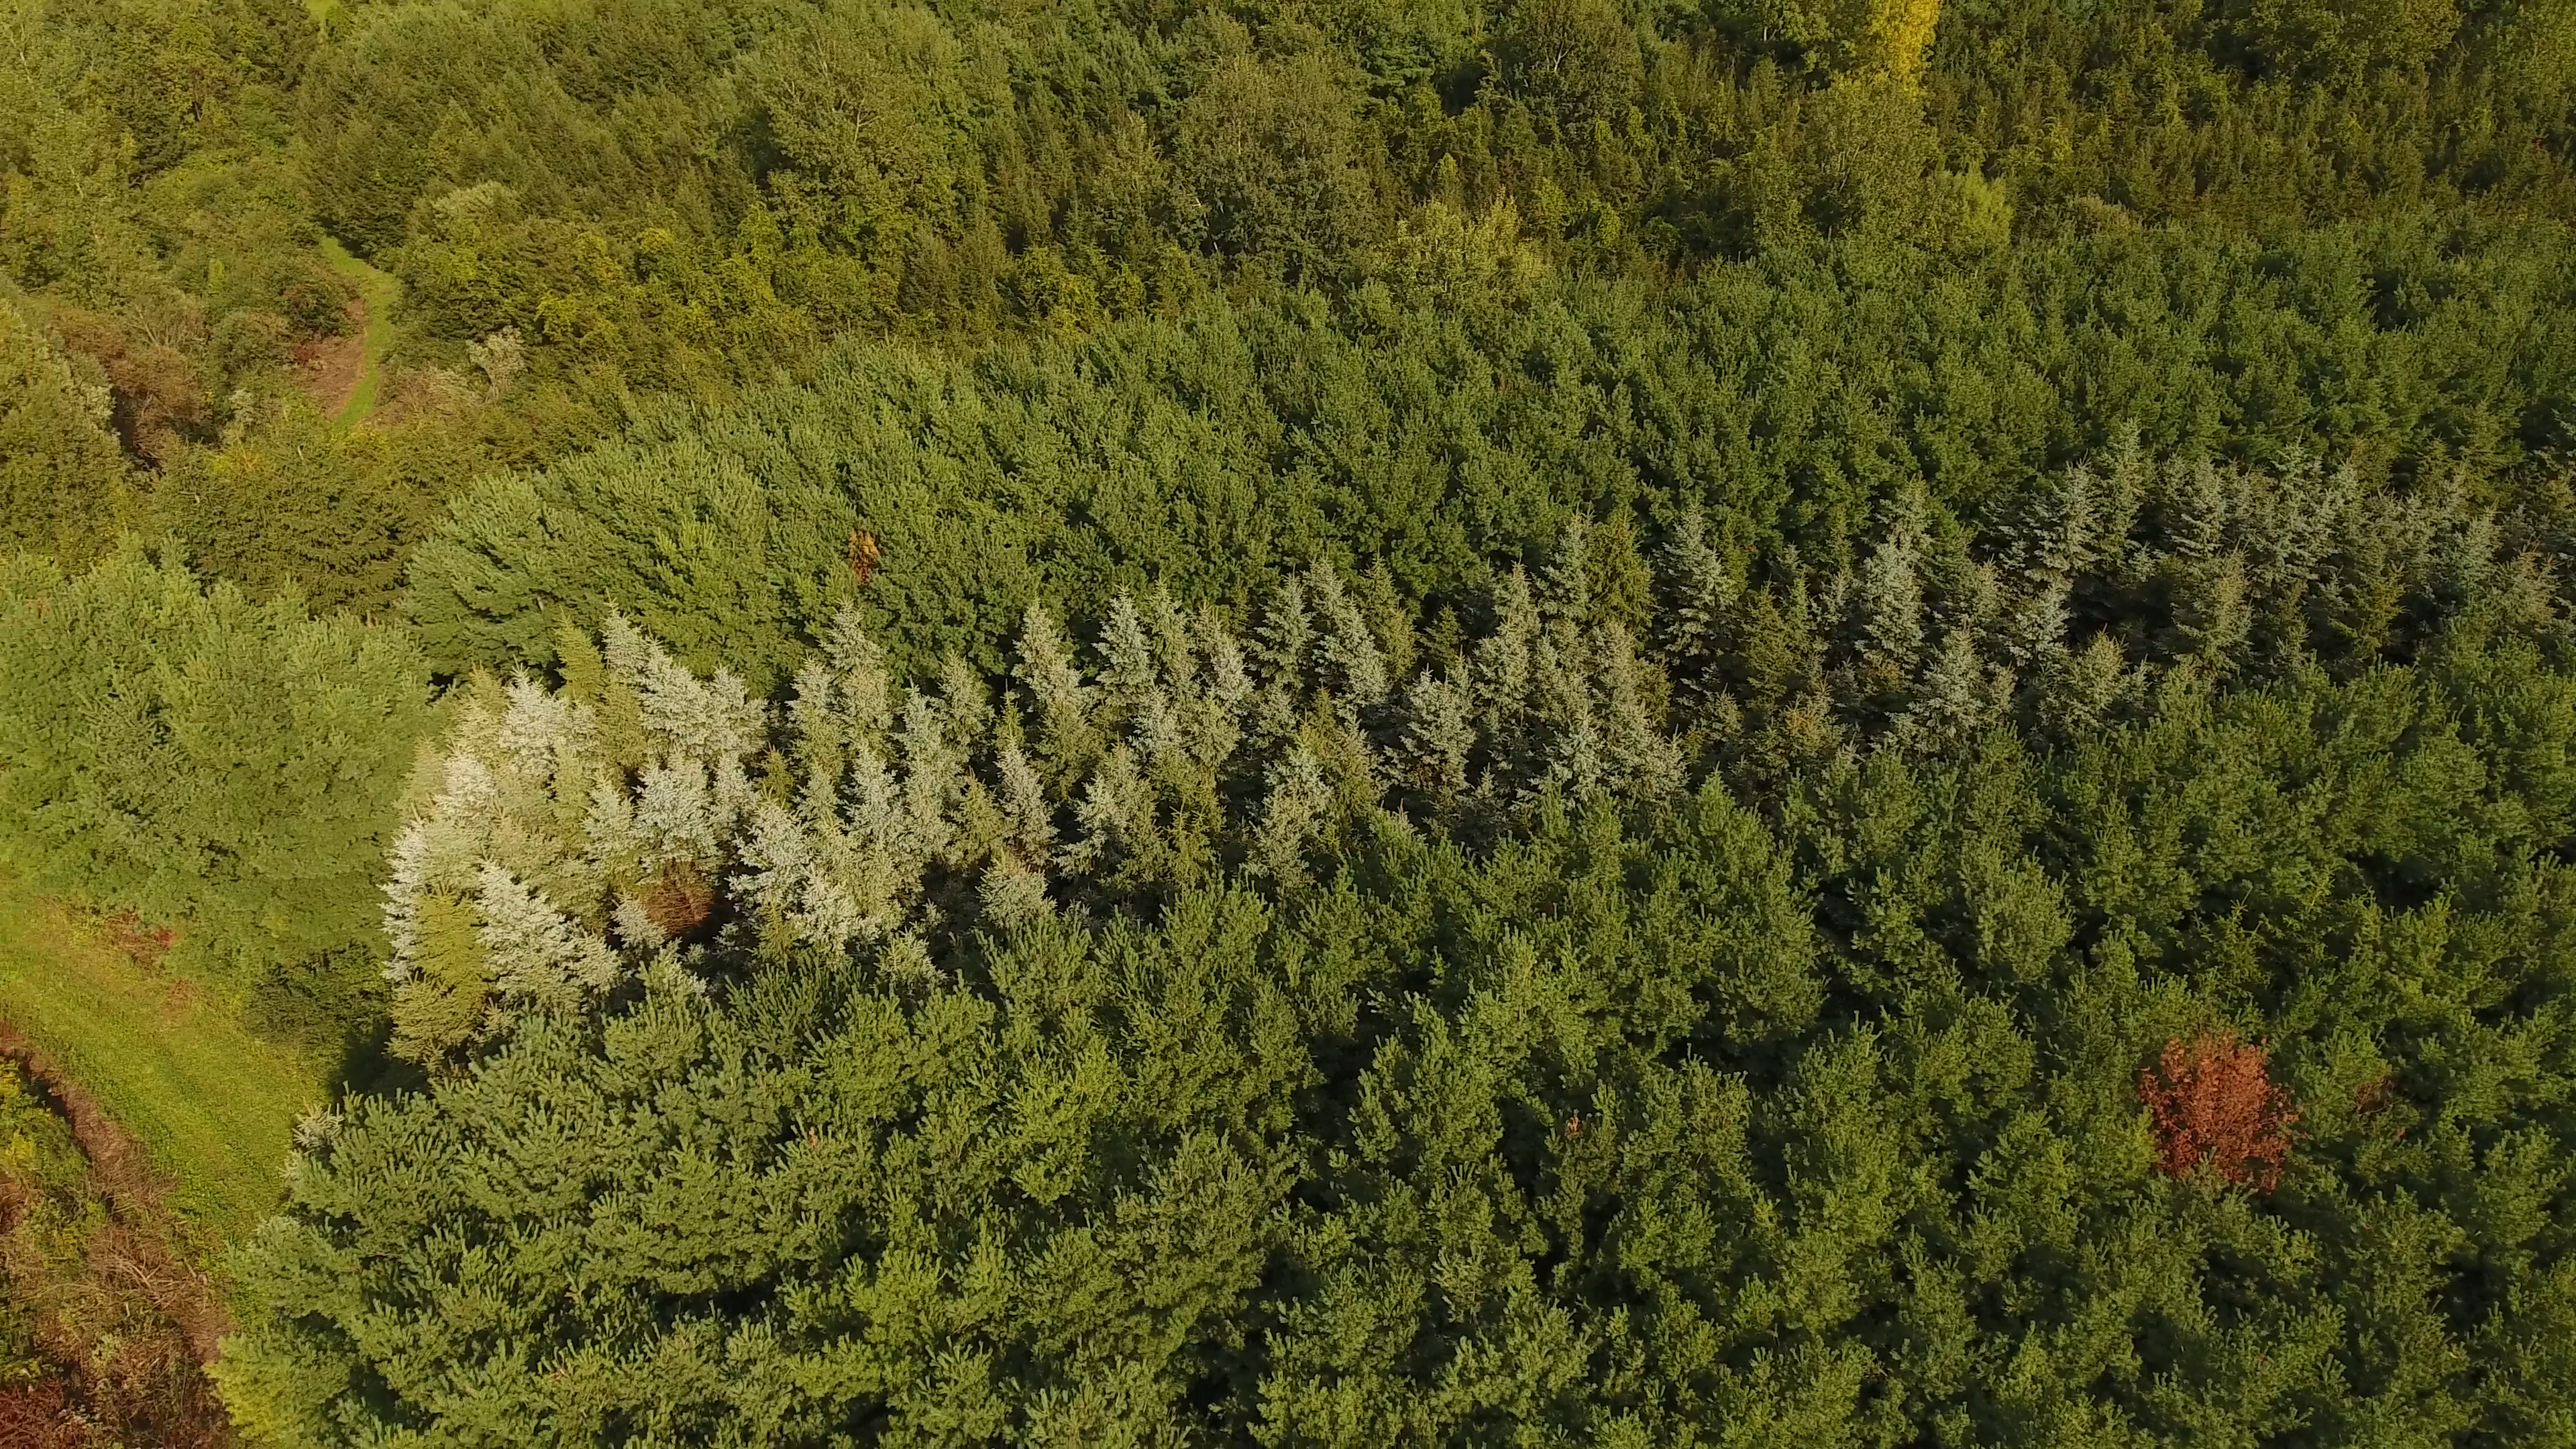 shinrin trees above one dead red 9-6-18.